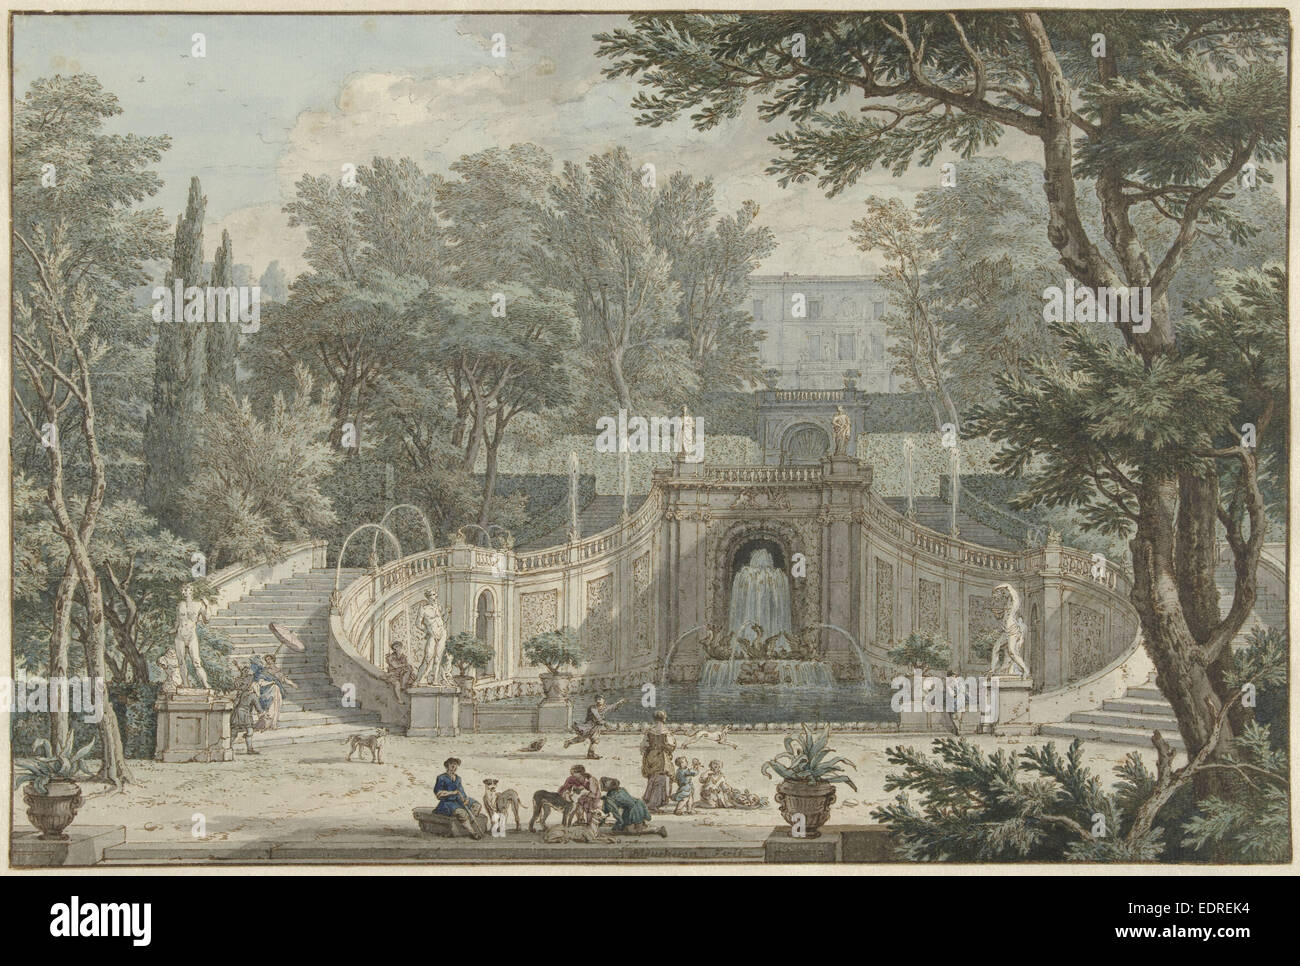 Tivoli Museum Rome View Of The Garden Of Villa D 39este In Tivoli Rome Italy